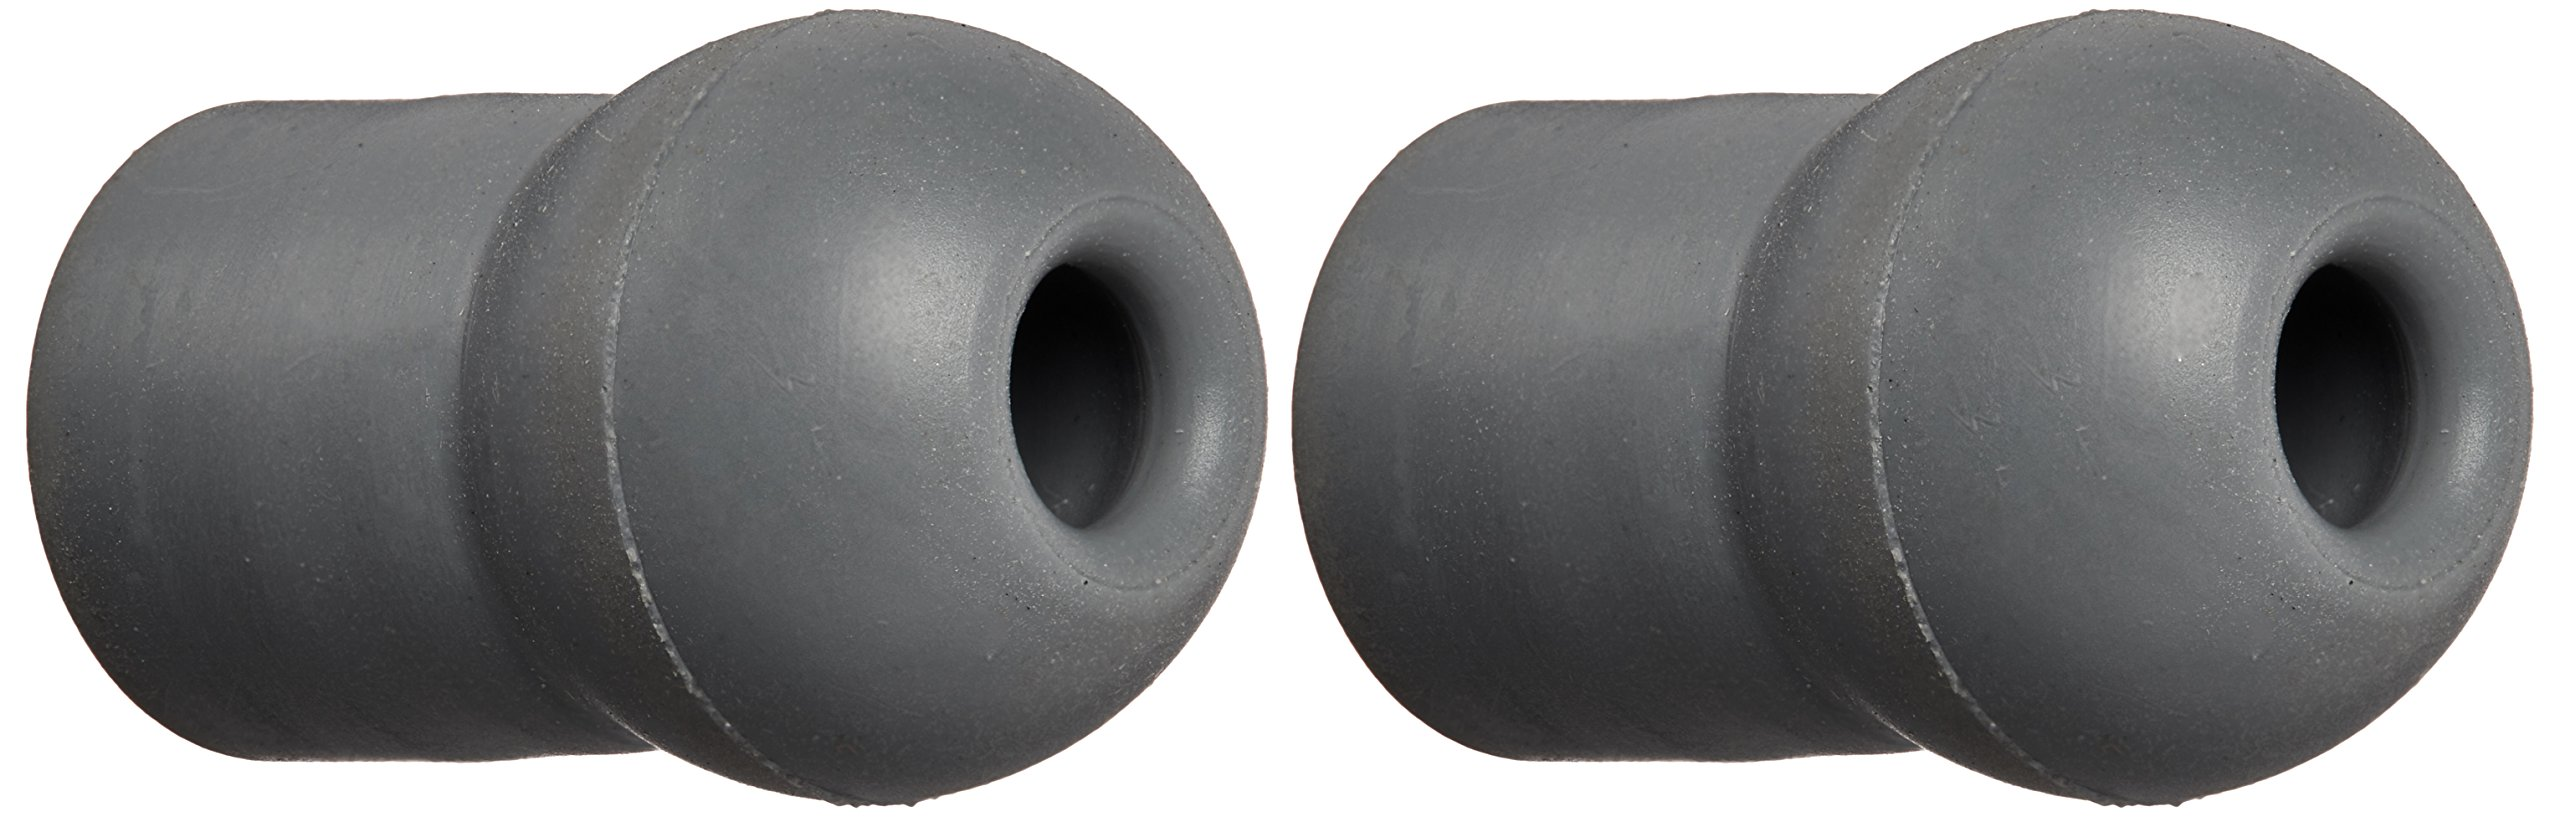 Welch Allyn 5079-170 Comfort Sealing Ear Tips, Large, Gray